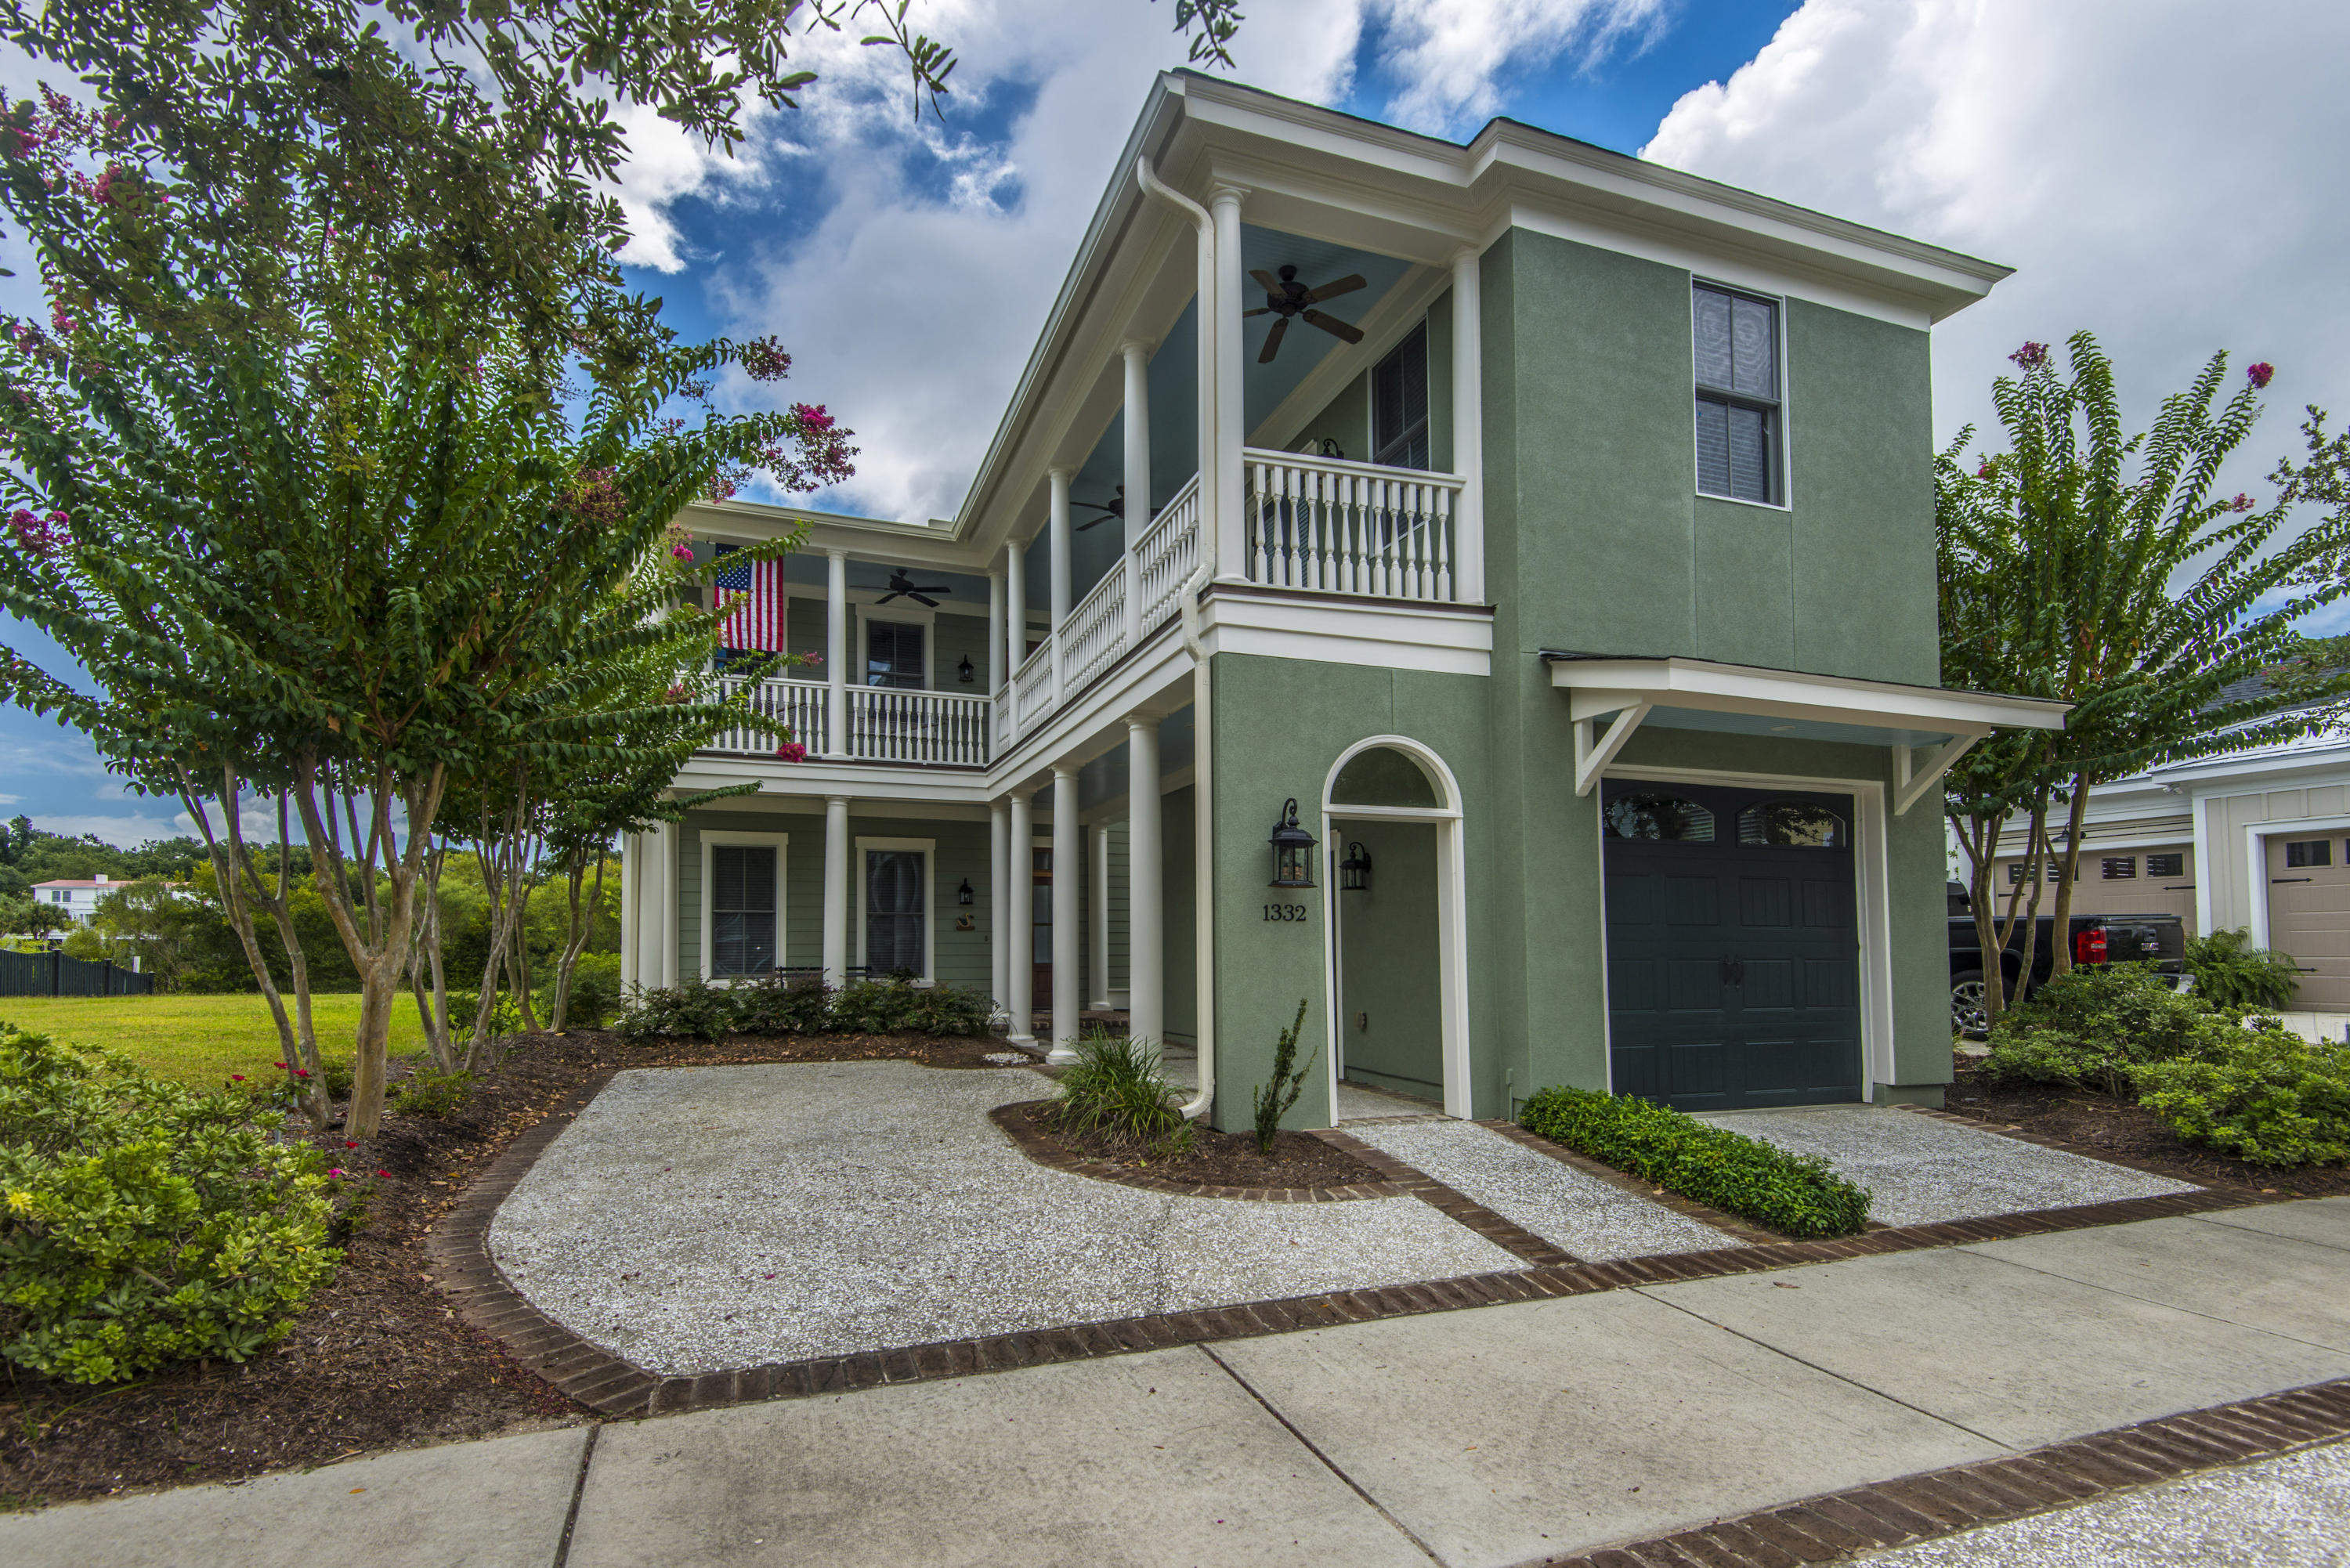 Watermark Homes For Sale - 1332 Penshell Place, Mount Pleasant, SC - 124